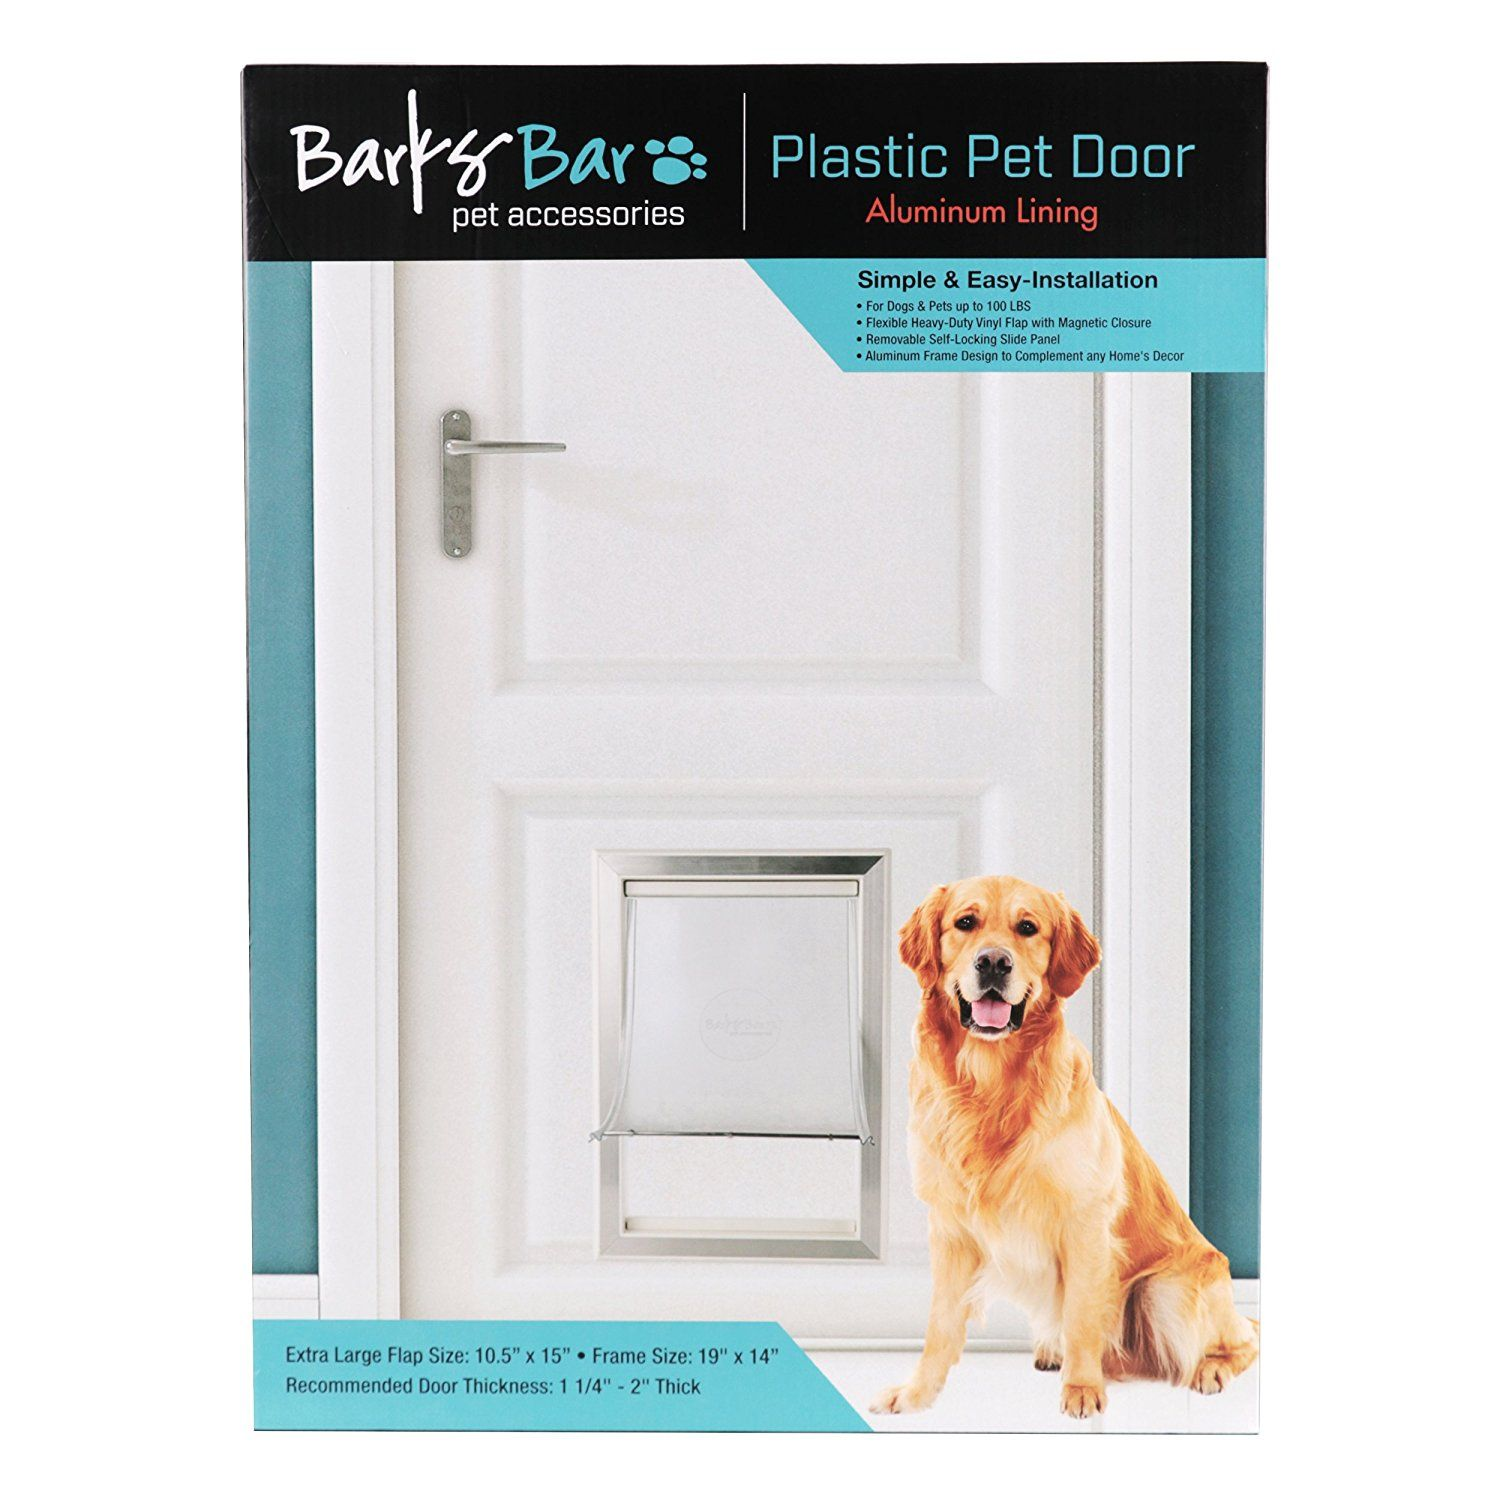 customer entry door replacement faqs doors wall infographic flap pet support product petsafe plastic care